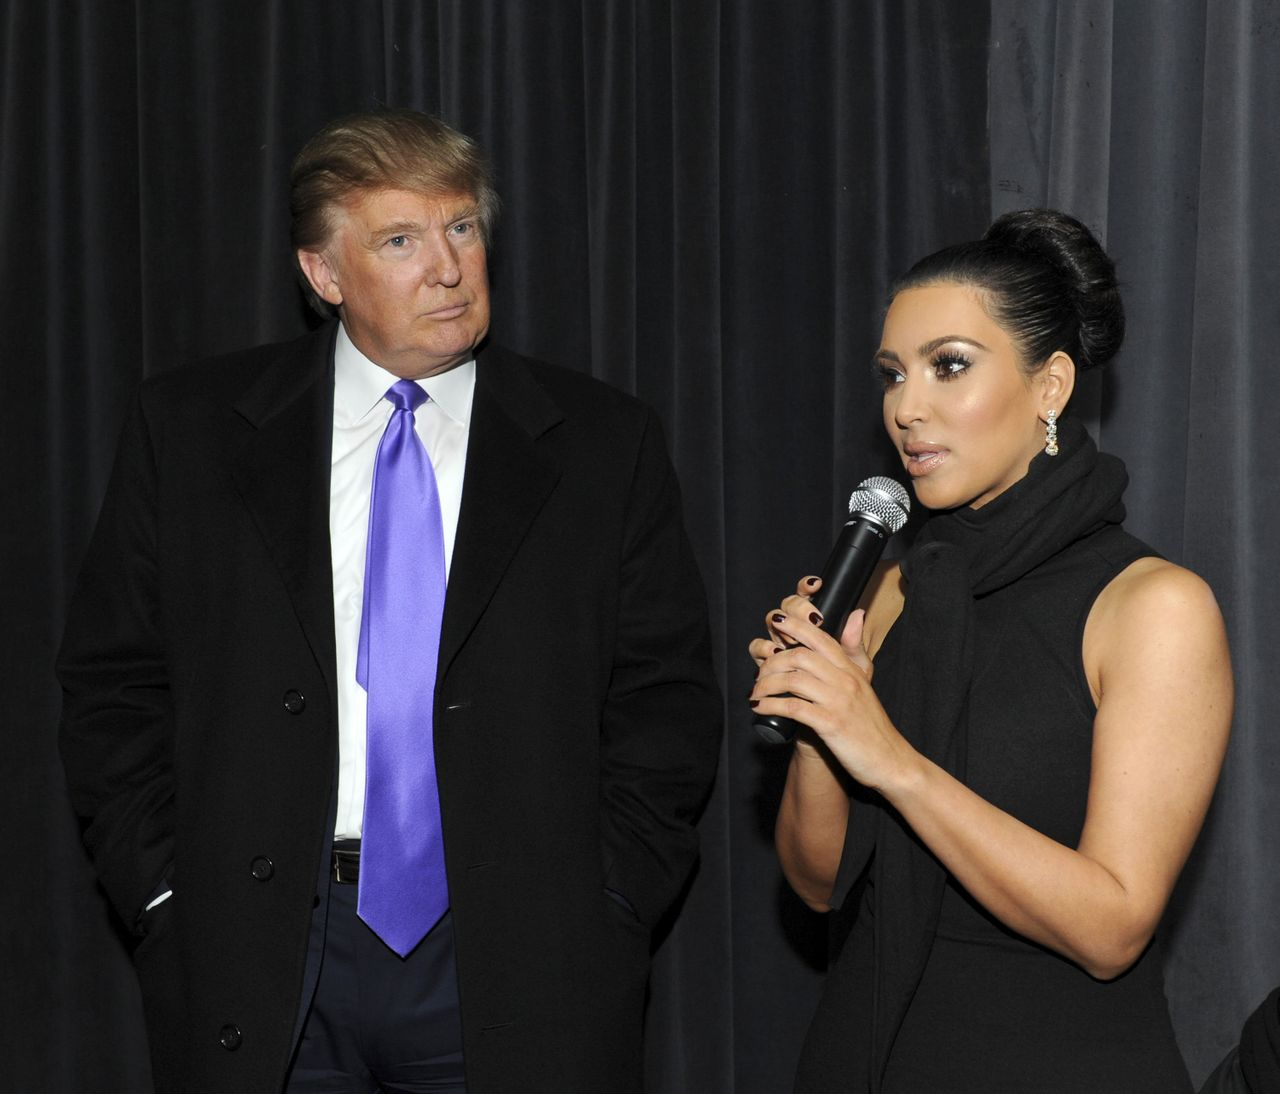 """Donald Trump and Kim Kardashian at The Gansevoort Hotel in New York, celebrating Perfumania and Kardashians's appearance on """"The Apprentice"""" on Nov. 10, 2010."""